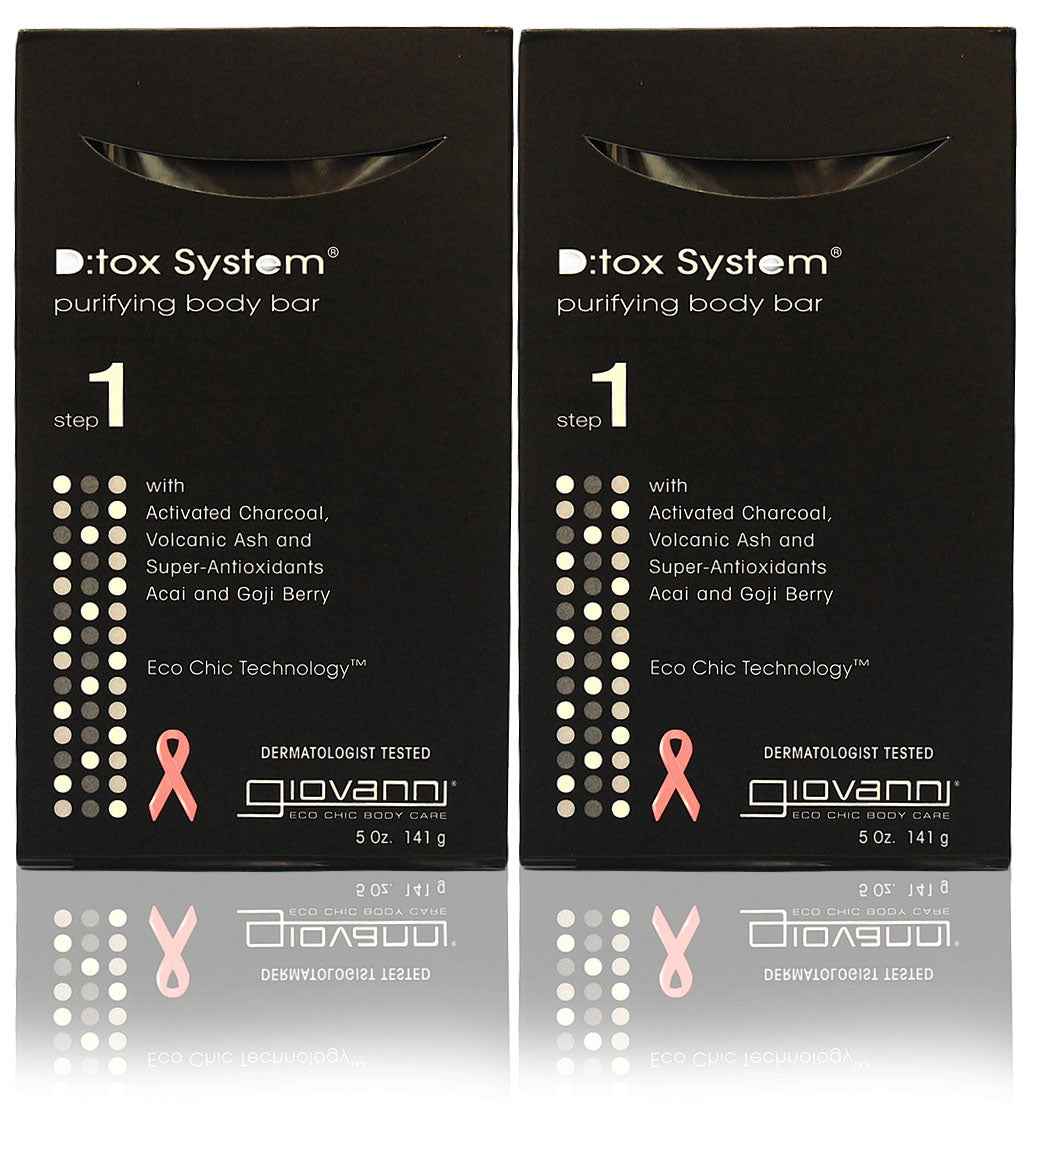 Giovanni d:tox system,purifying body bar(pack of 2)